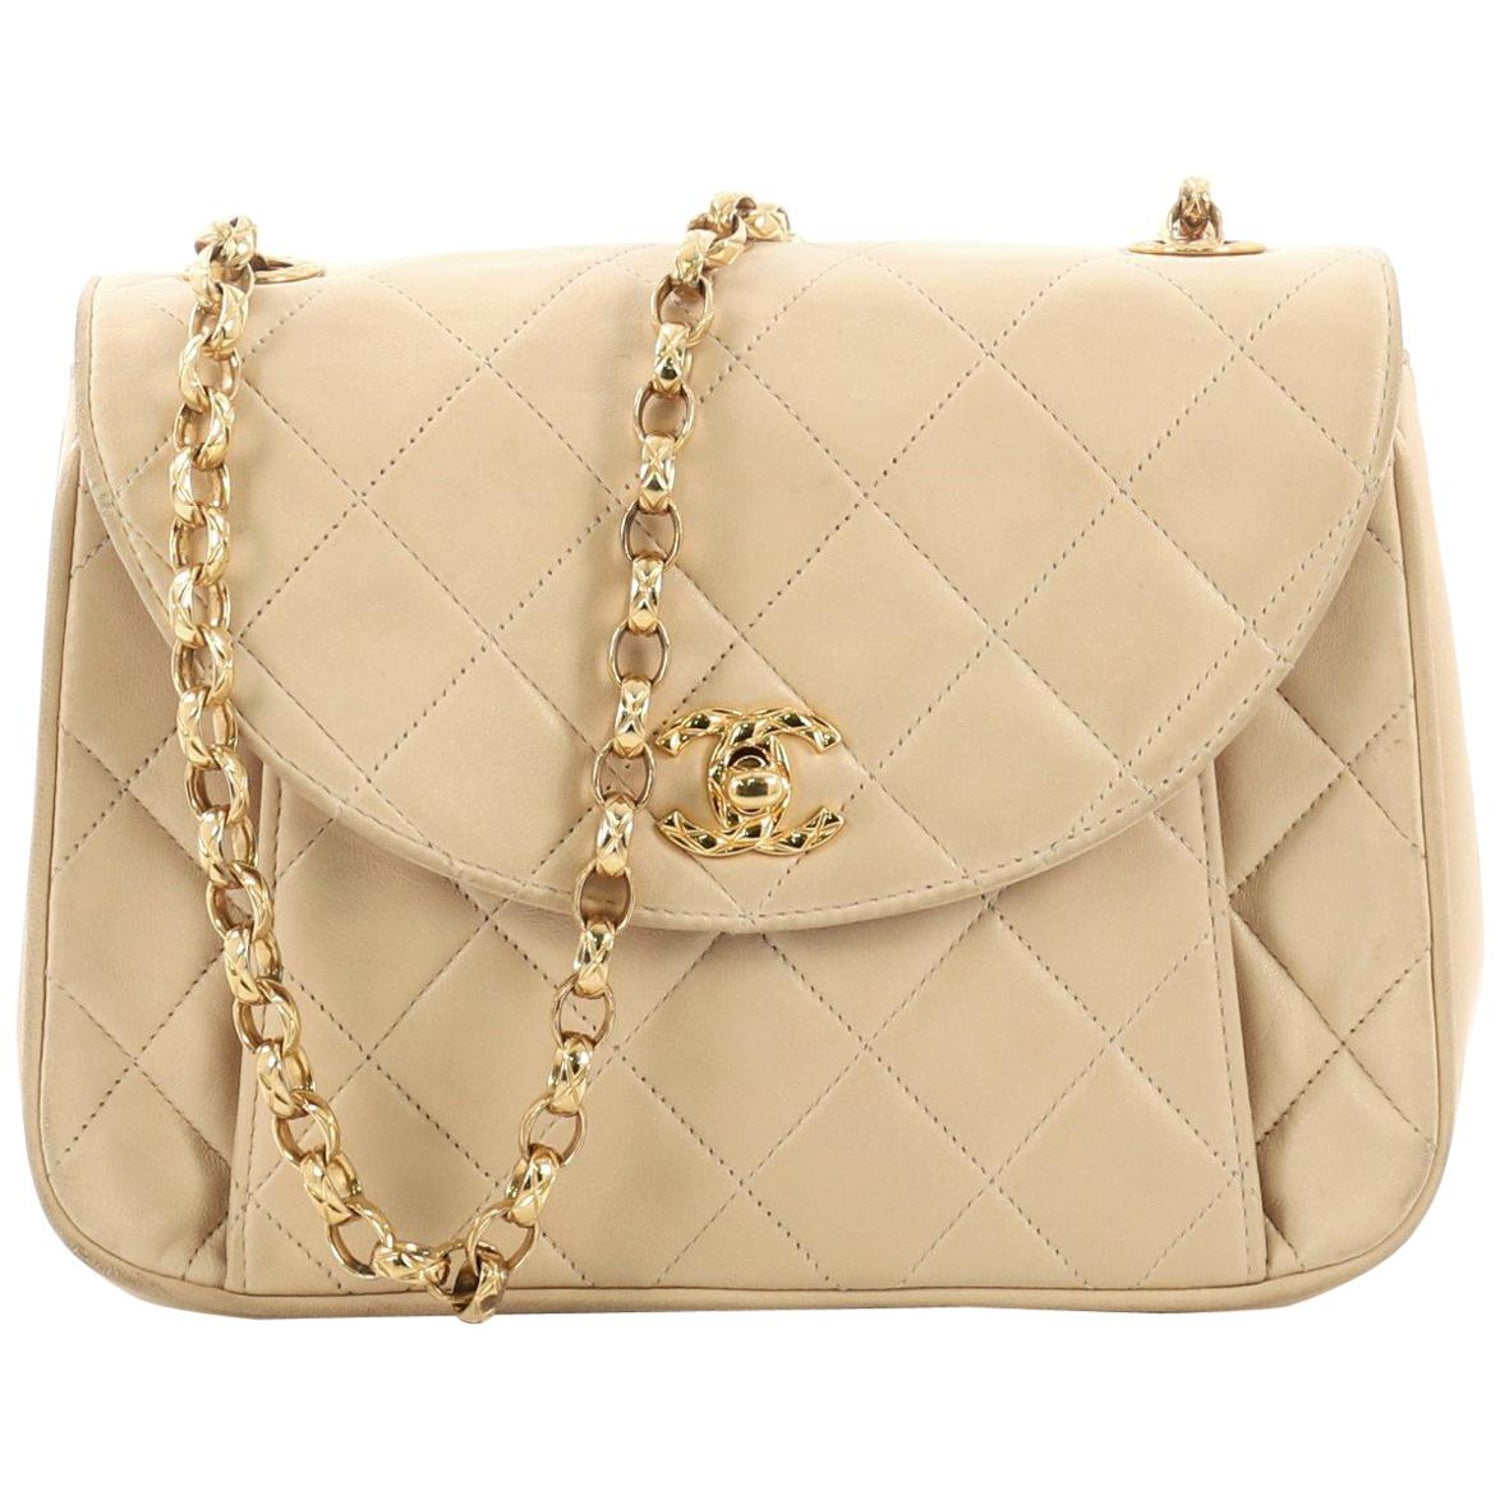 5b7d864e74d8 Chanel Vintage Round Flap Bag Quilted Lambskin Small at 1stdibs